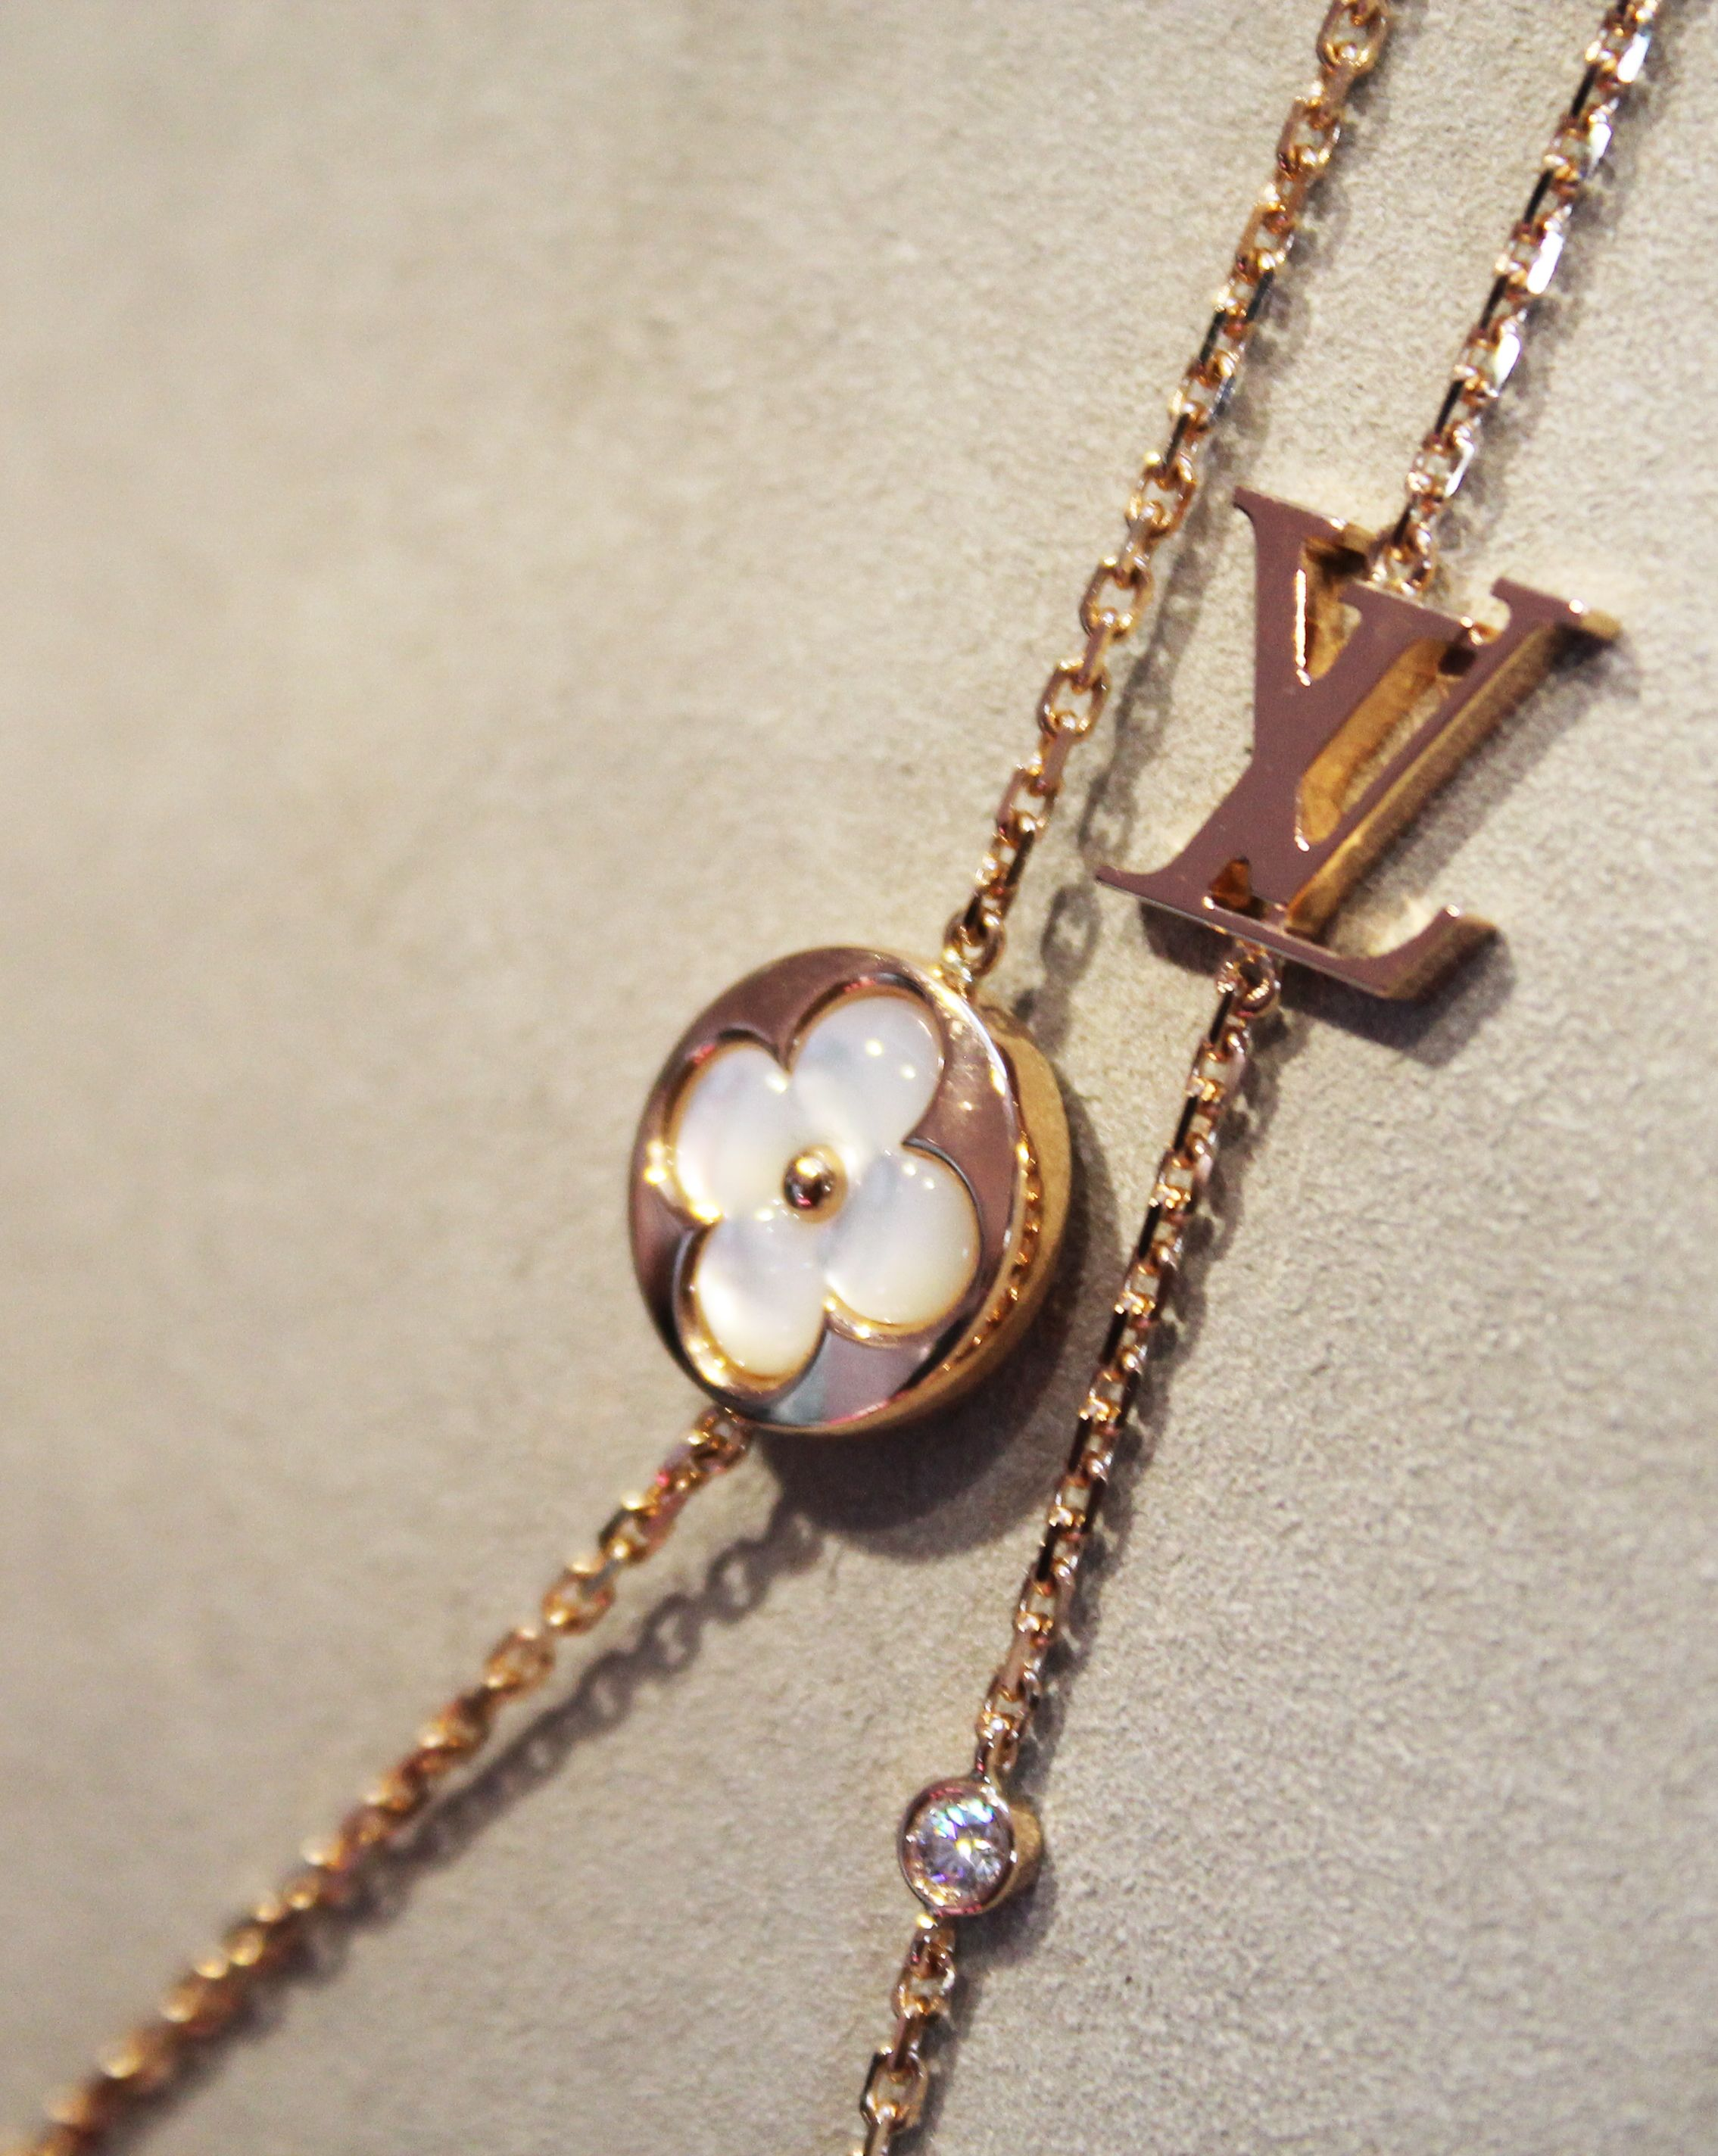 629f4e60b7d5 Louis Vuitton Blossom BB mother of pearl and rose gold long necklace.